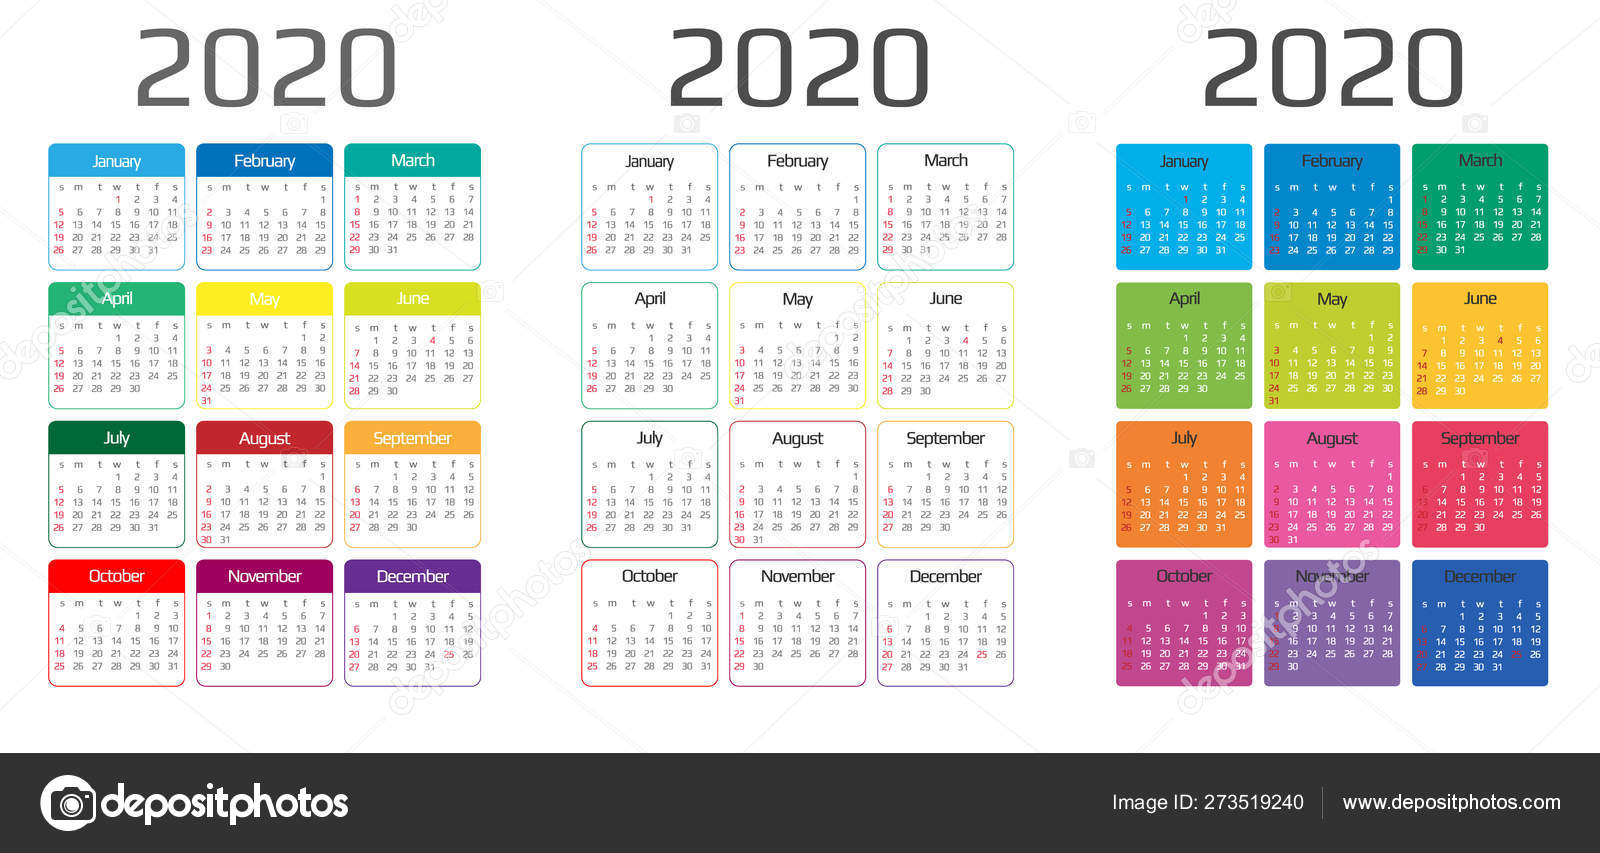 Events Calendar 2020.Calendar 2020 Template 12 Months Include Holiday Event